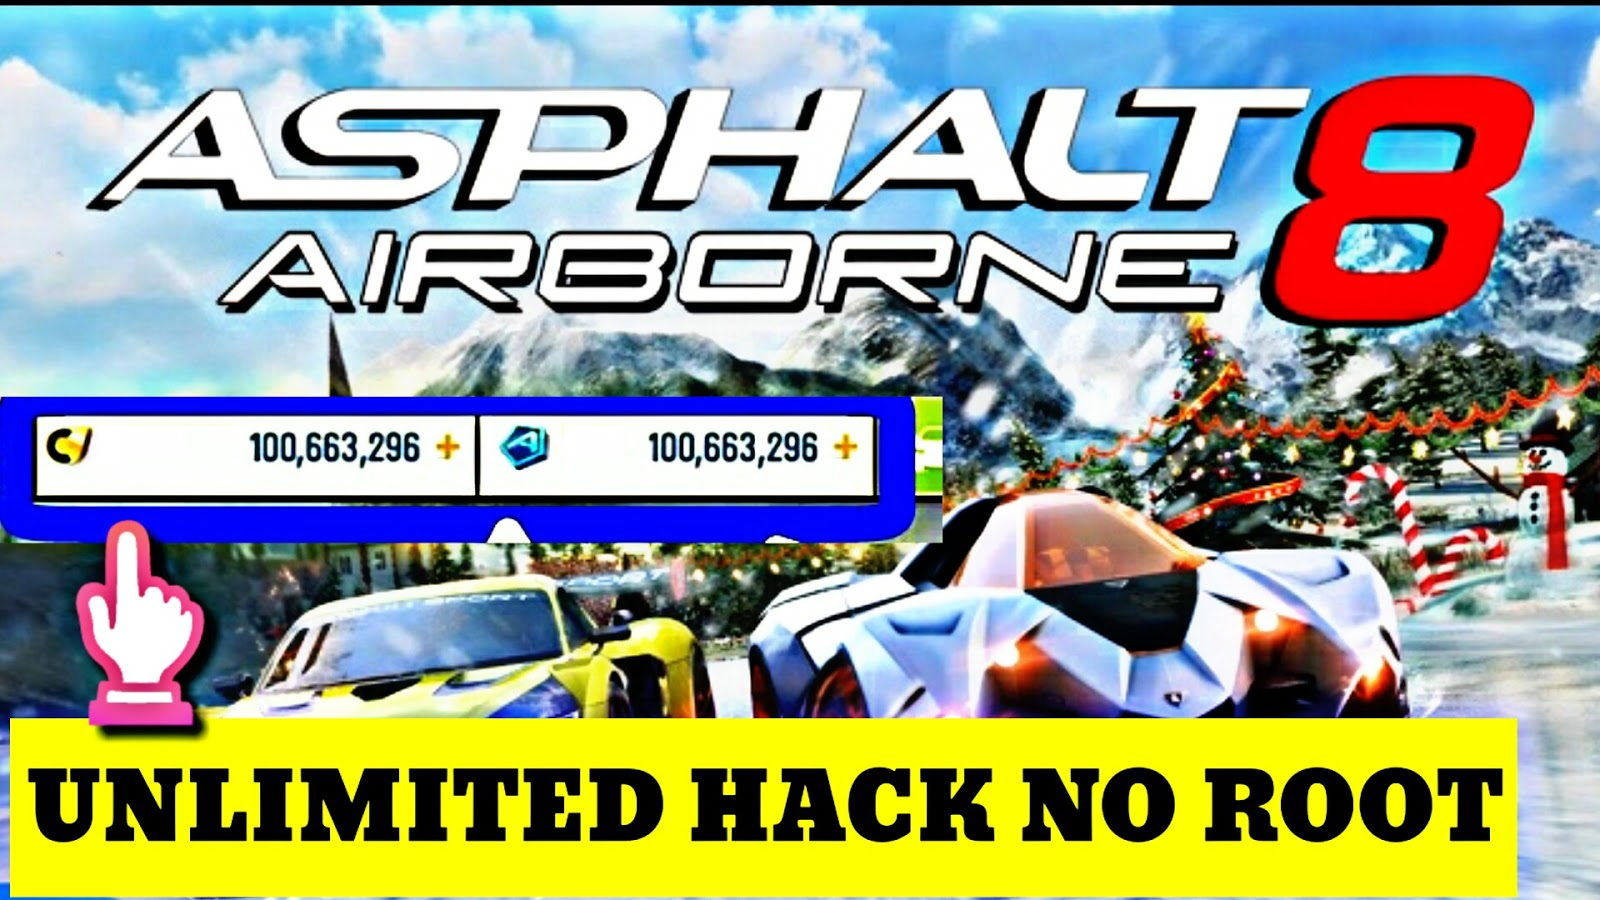 [INFO] GAMEGUARDIAN.NET ASPHALT 8 | UNLIMITED Credits and Tokens